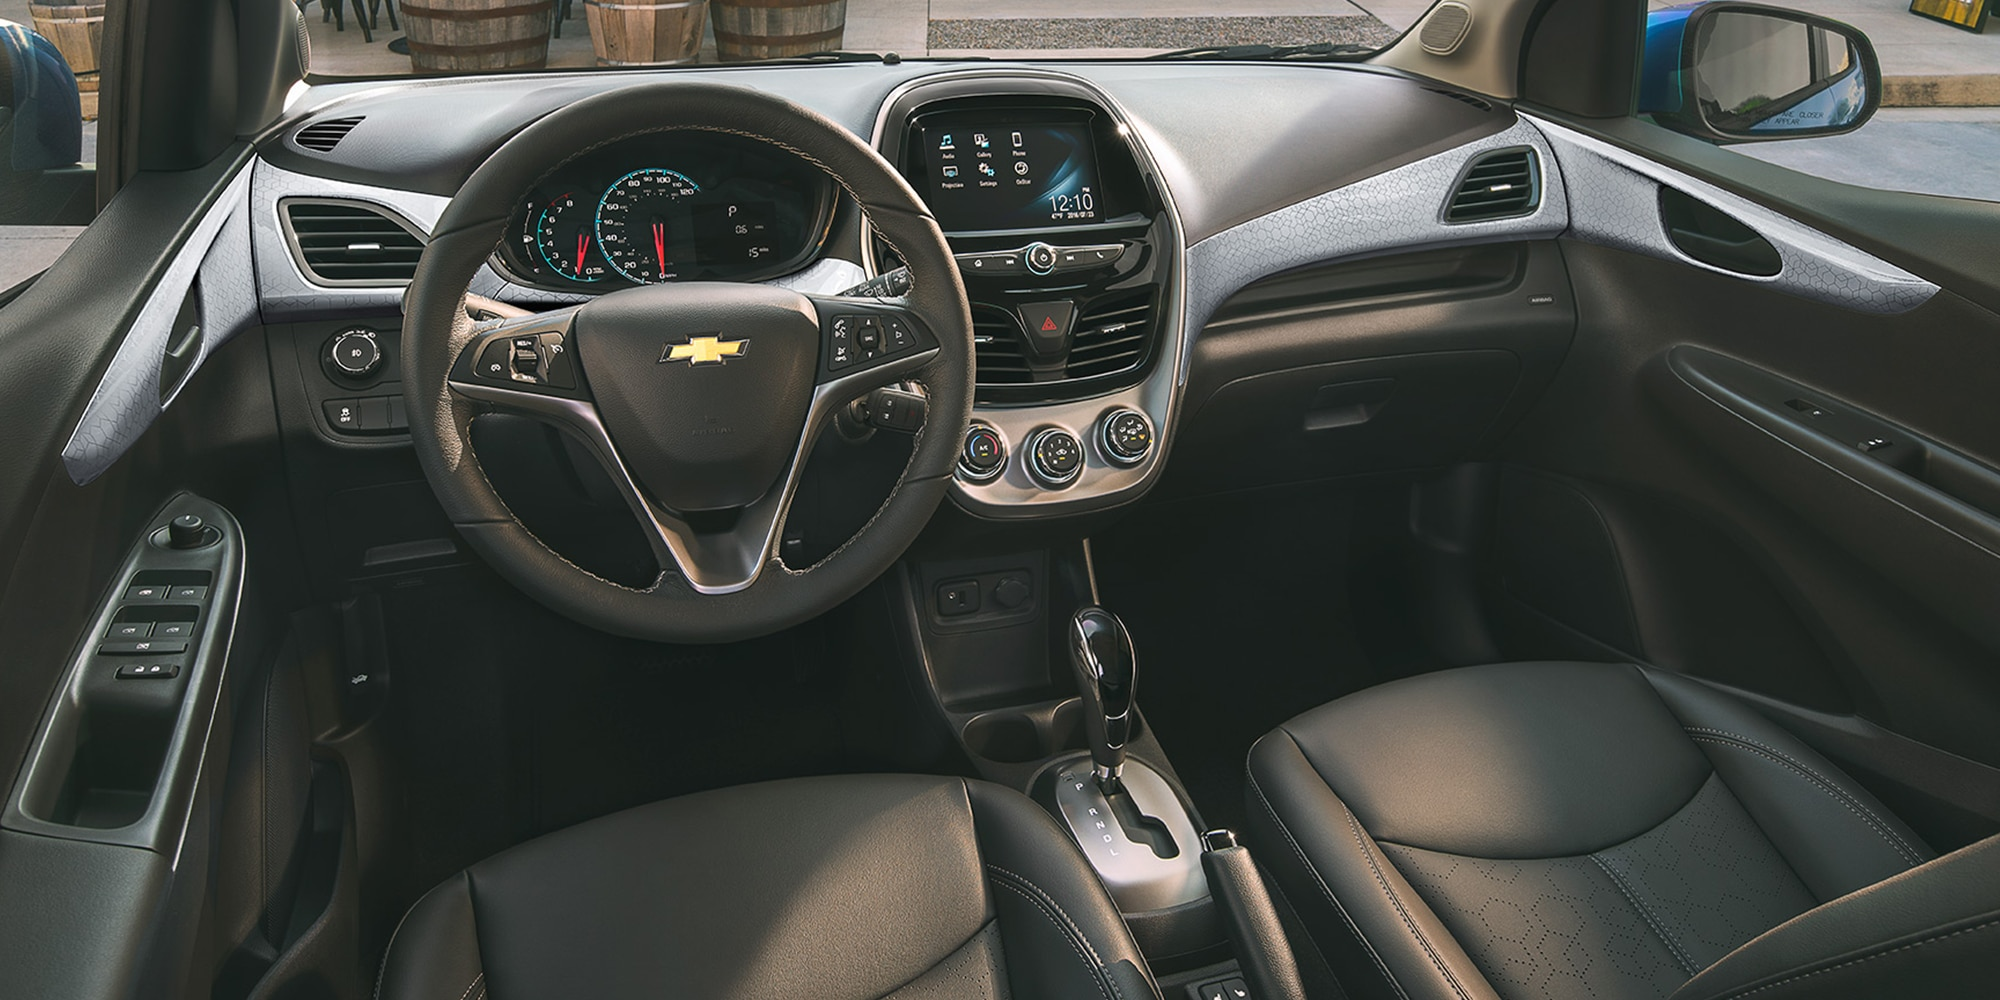 New Chevrolet Spark in Leesburg, VA